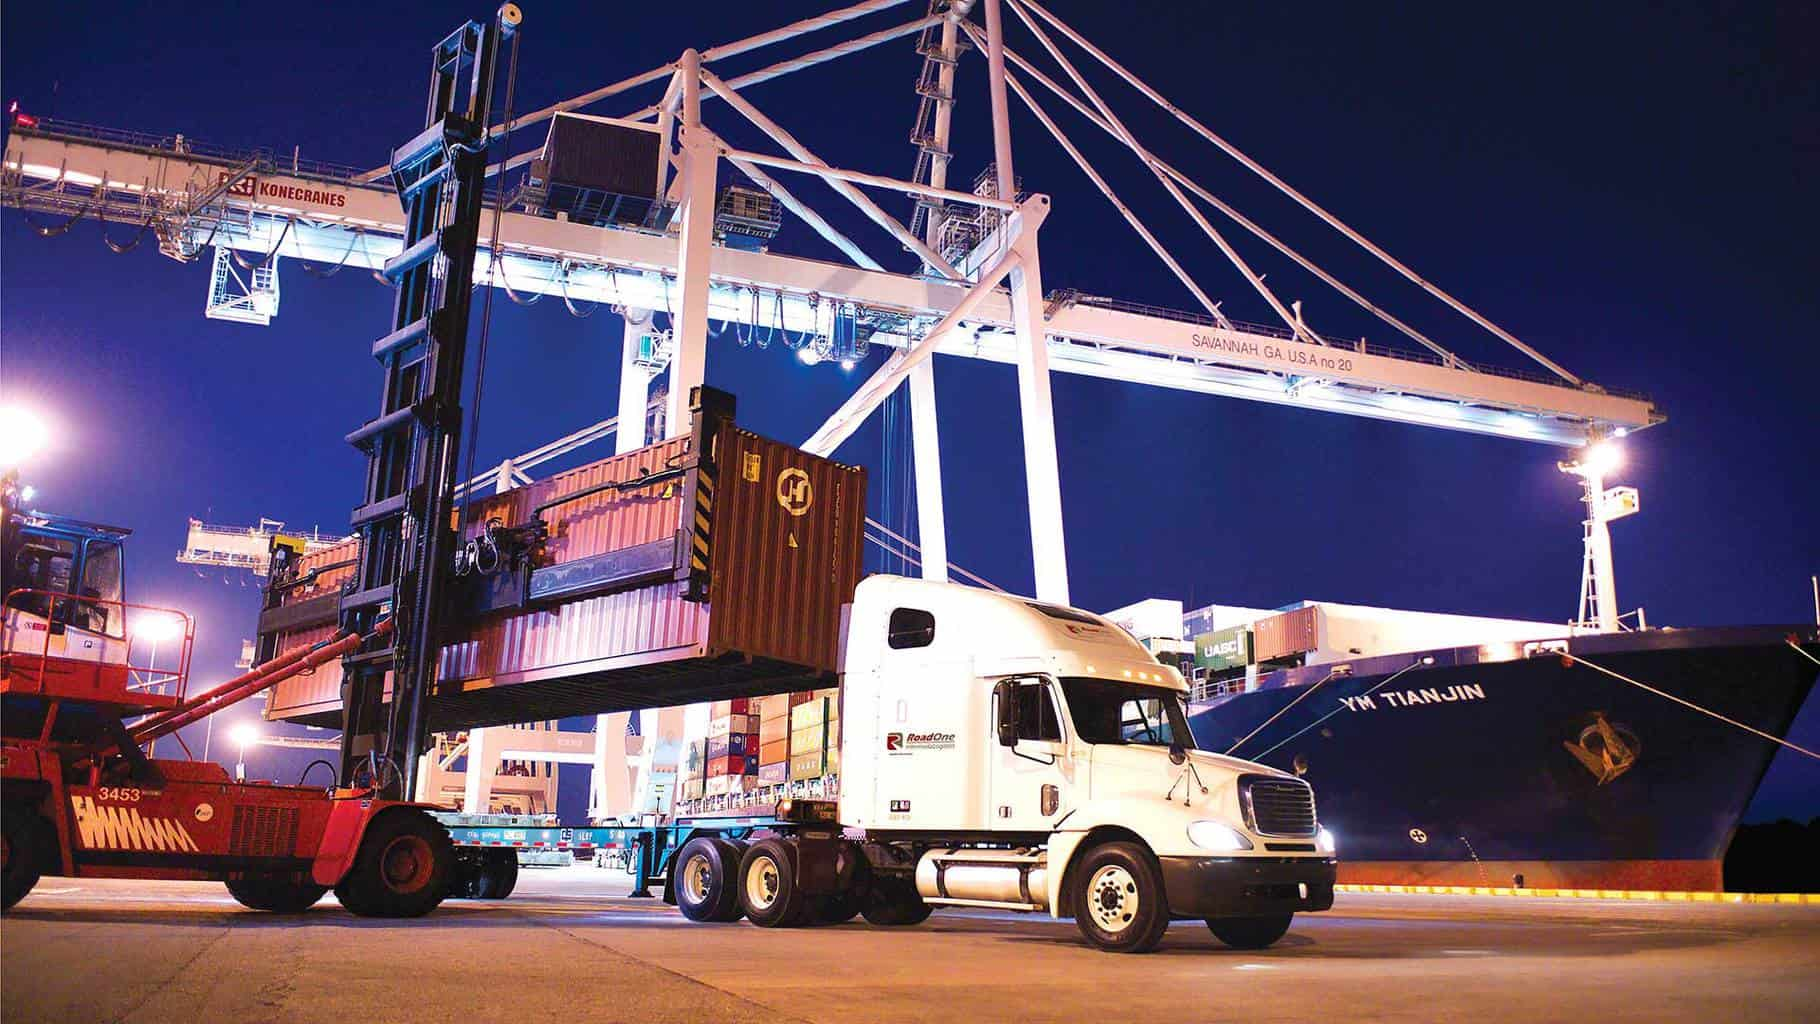 Port Report: RoadOne starts broker to tap owner-operator